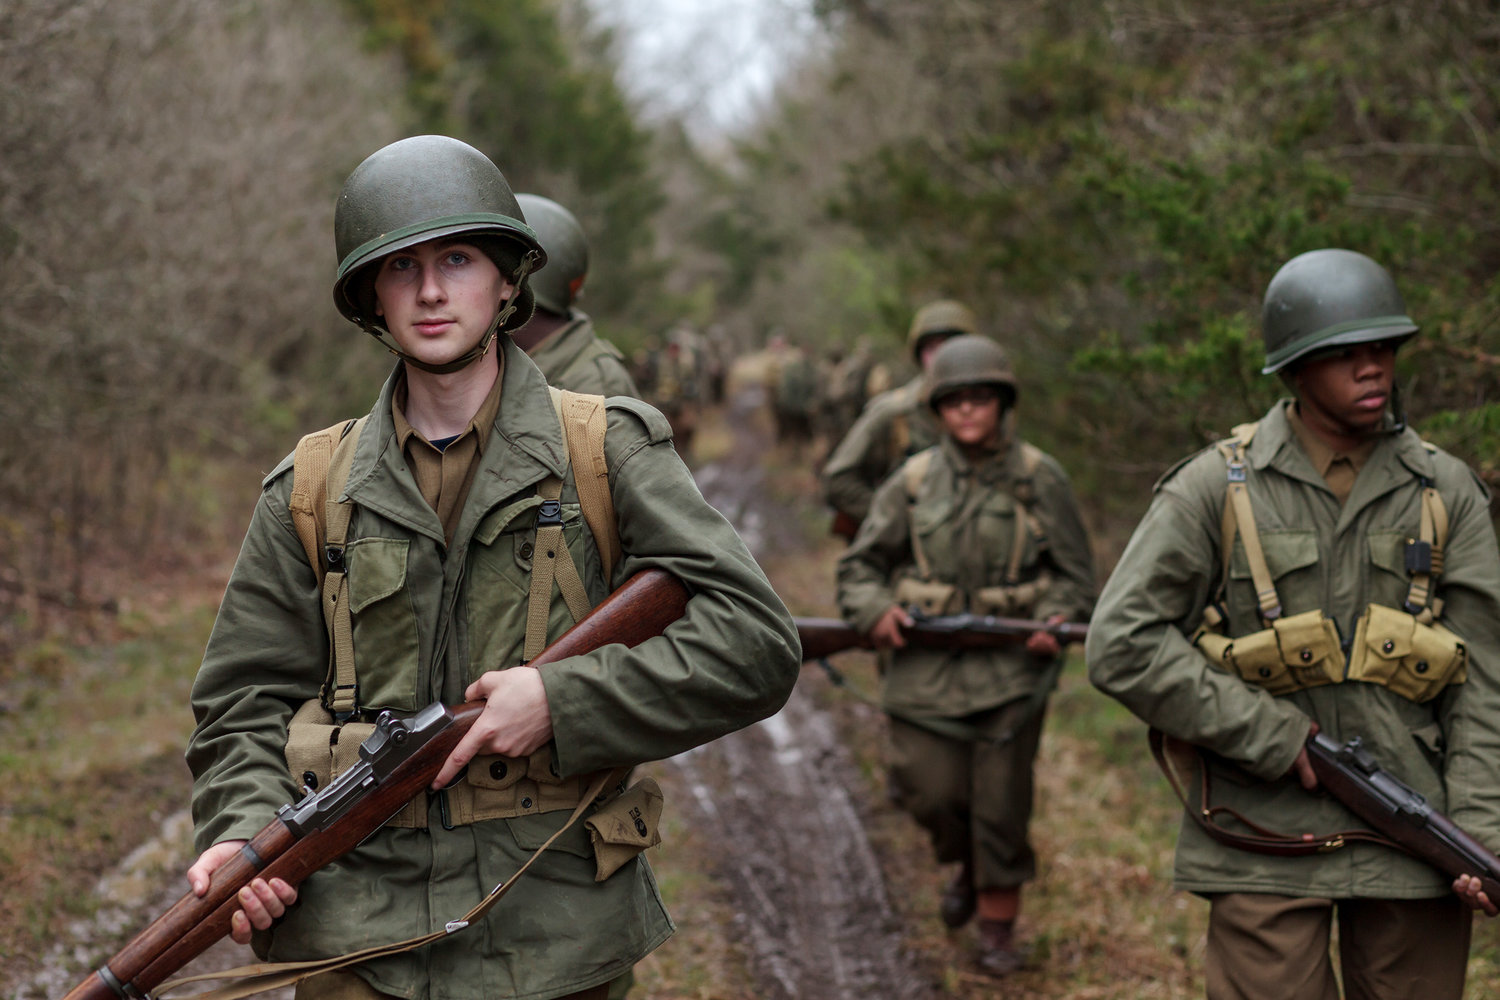 Playing World War Ii Photographing An Ultra Realistic